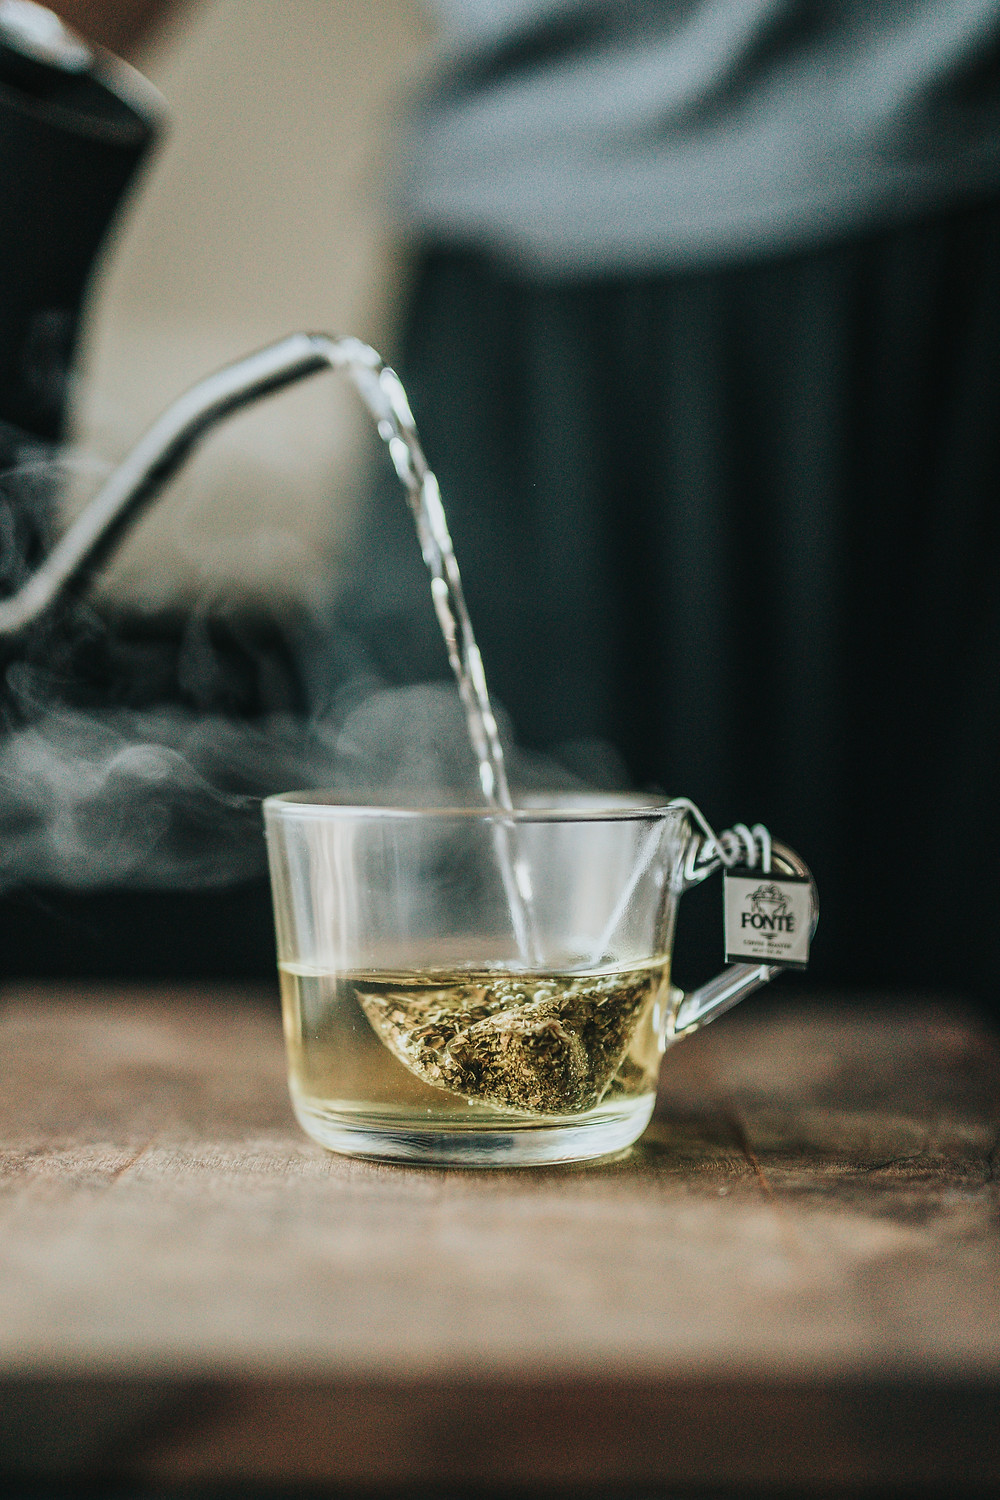 water pouring on a green tea bag in a glass mug